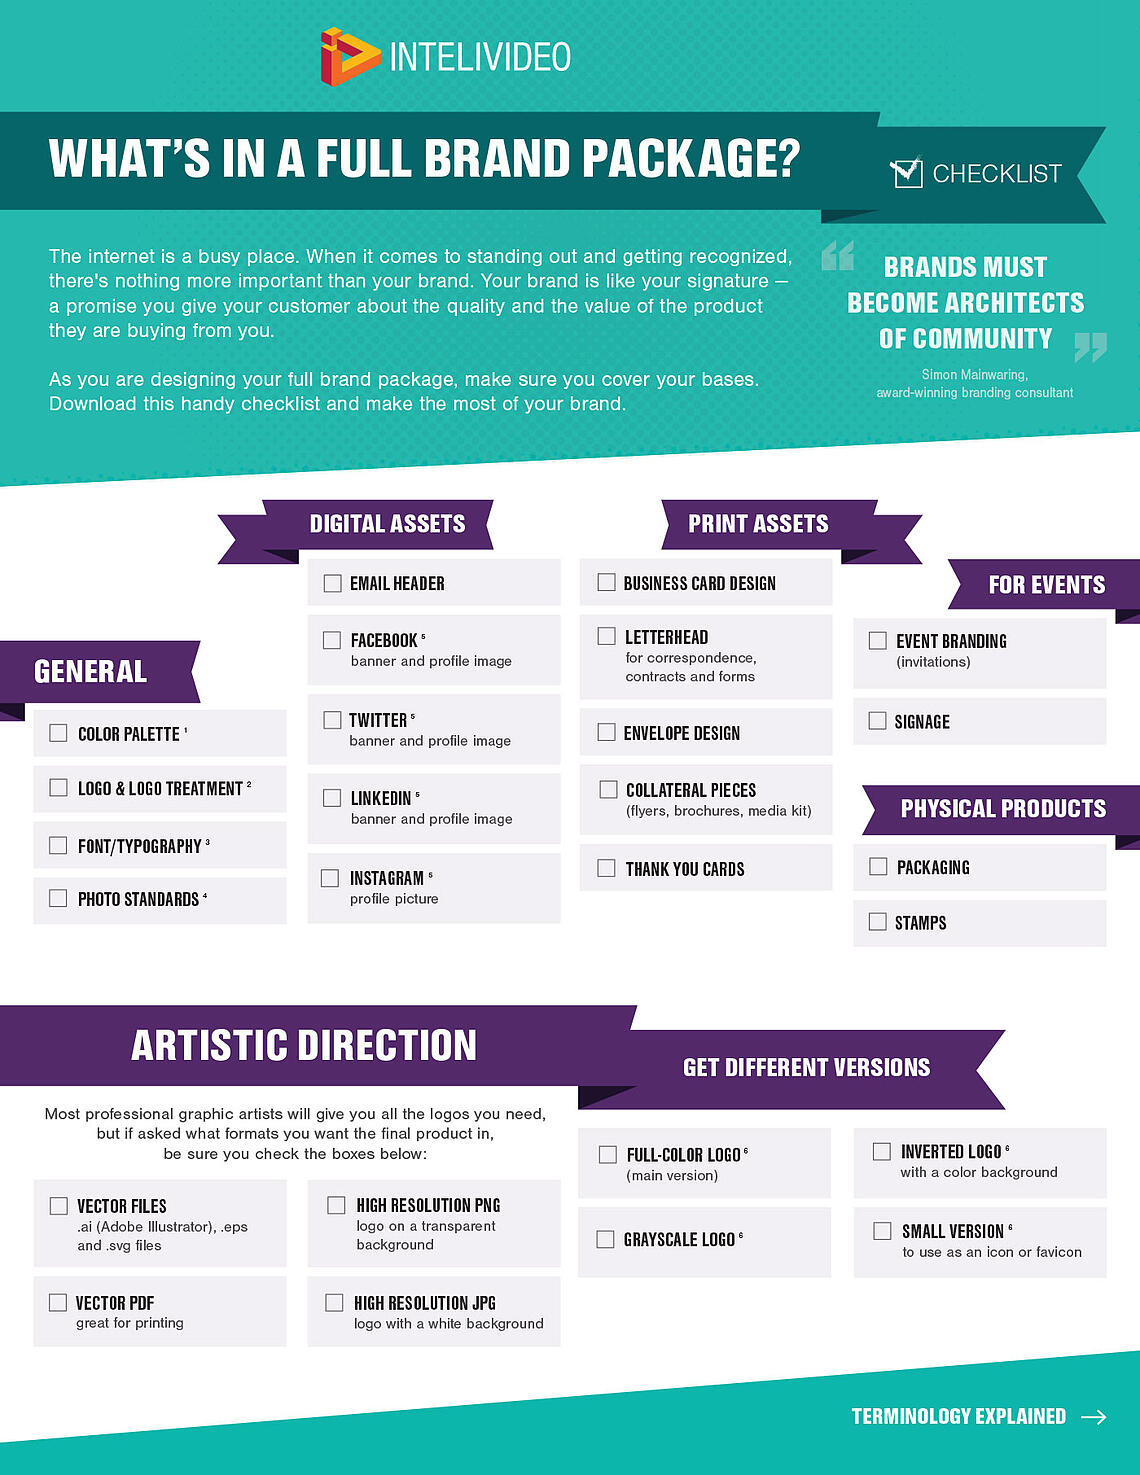 intelivideo-whats-in-a-brand-package-checklist-preview.jpg